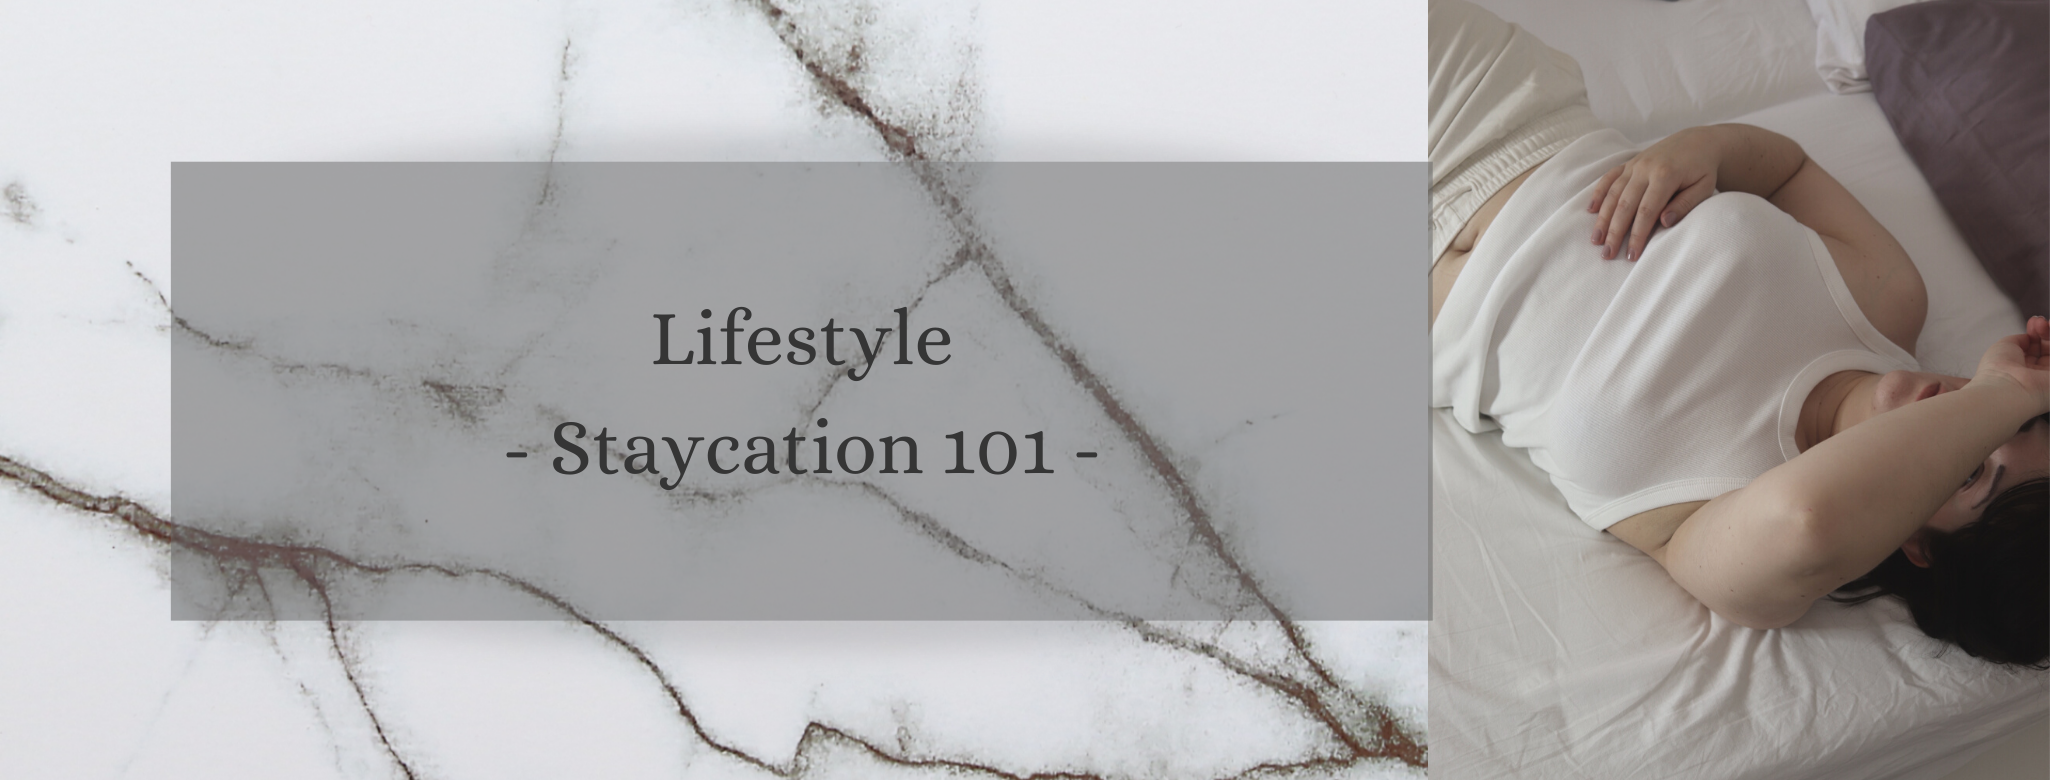 Lifestyle: My personal Staycation 101